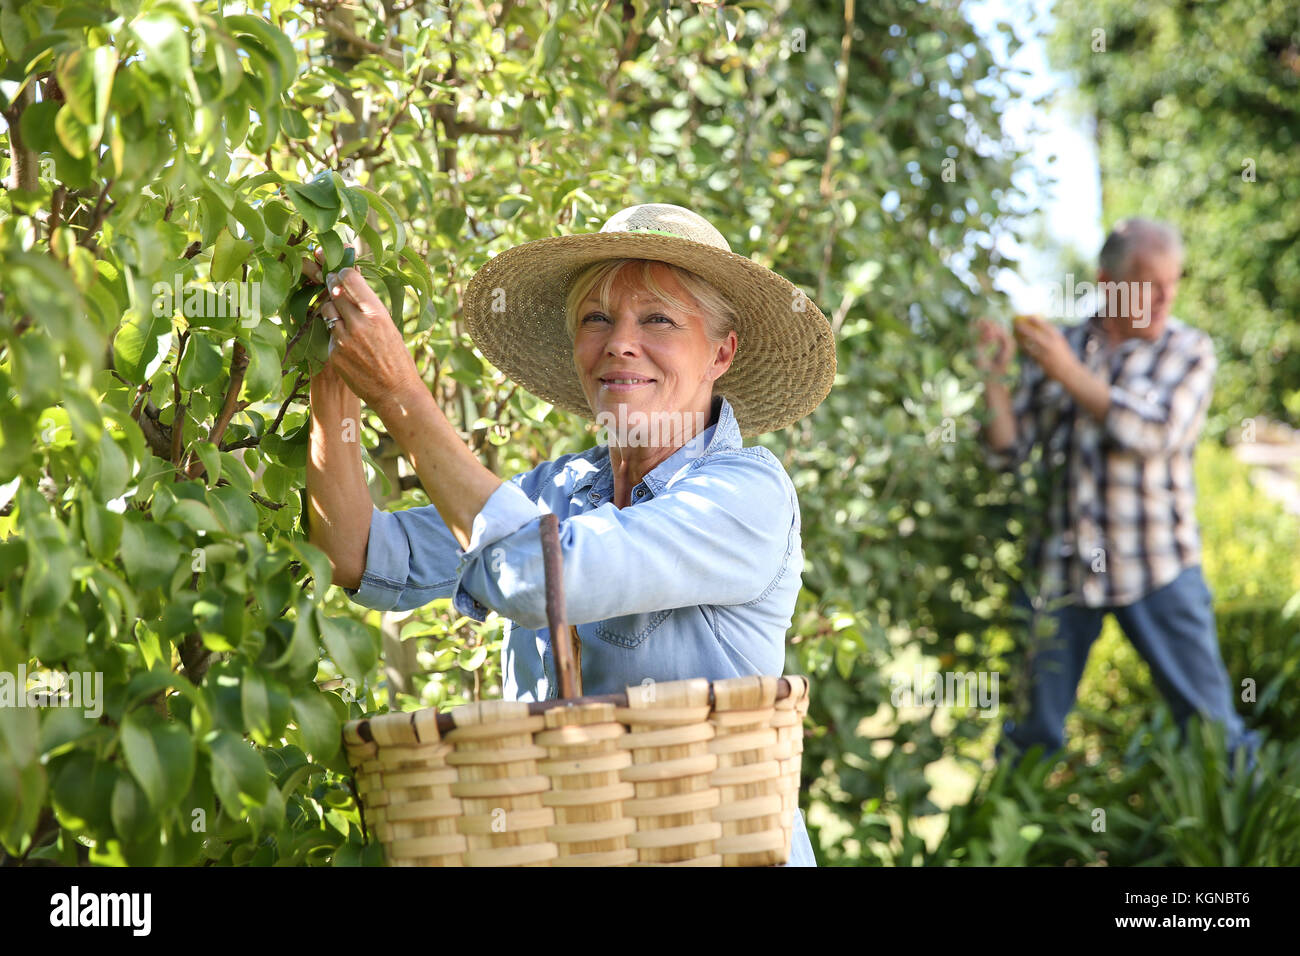 Senior woman picking pears from tree Stock Photo